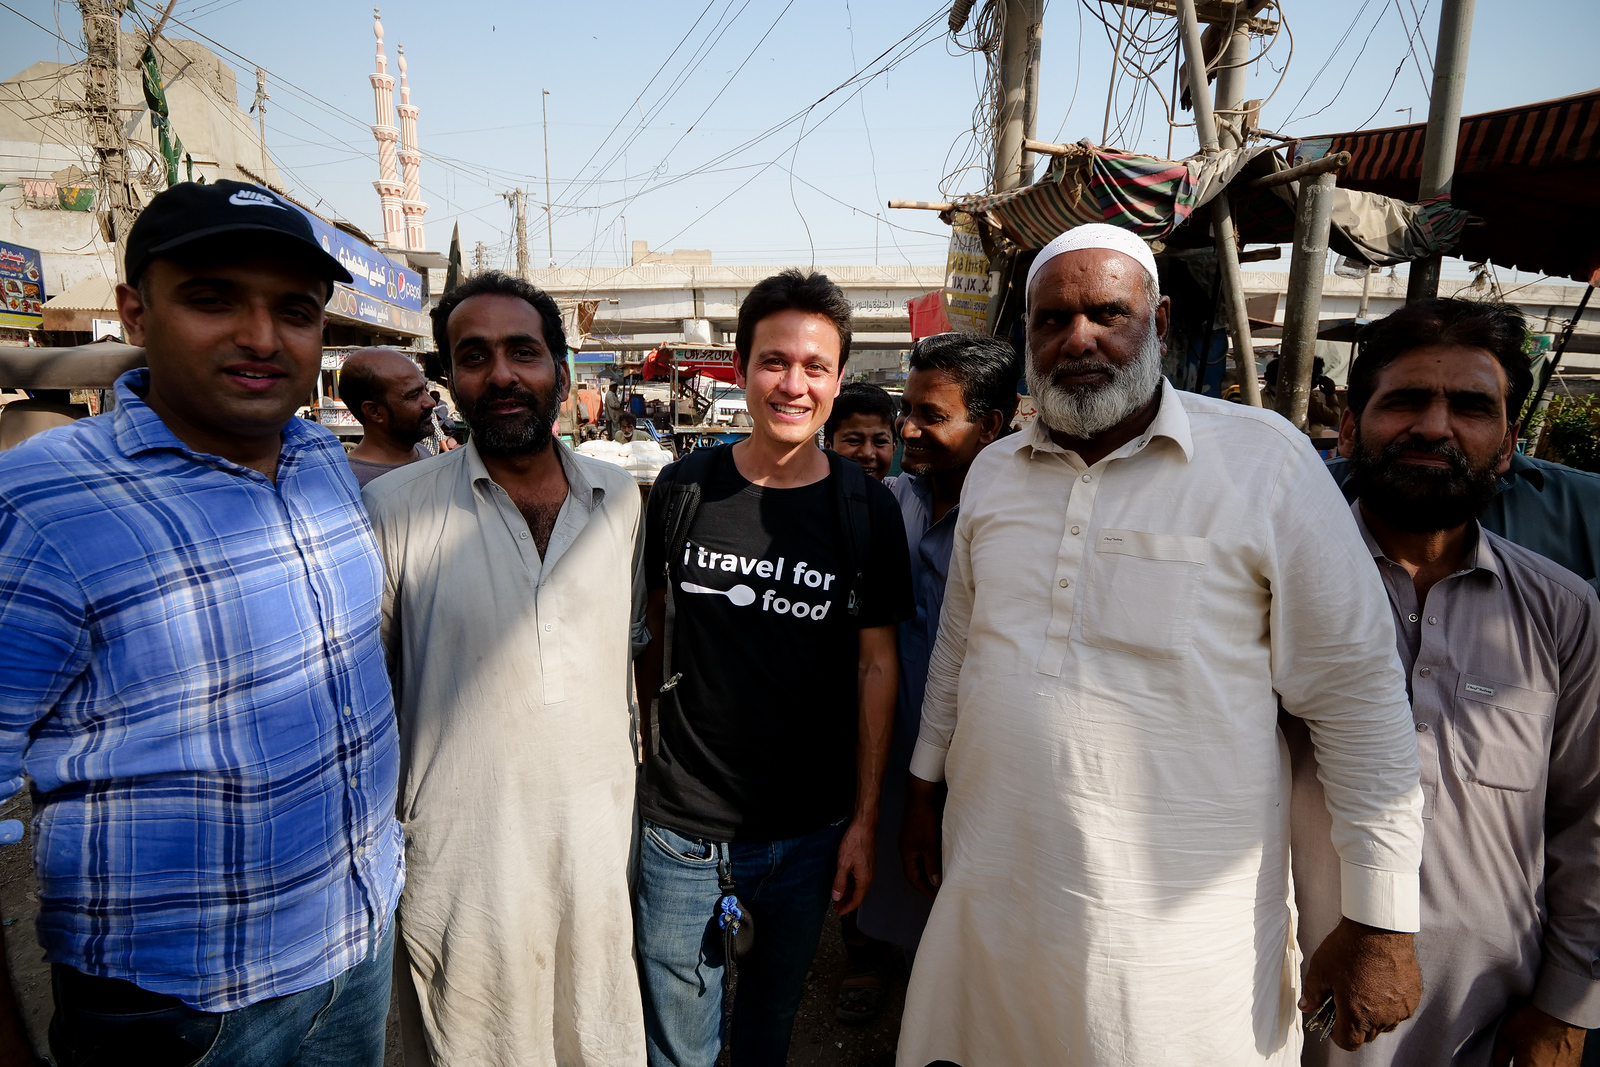 Very friendly people in Karachi, Pakistan